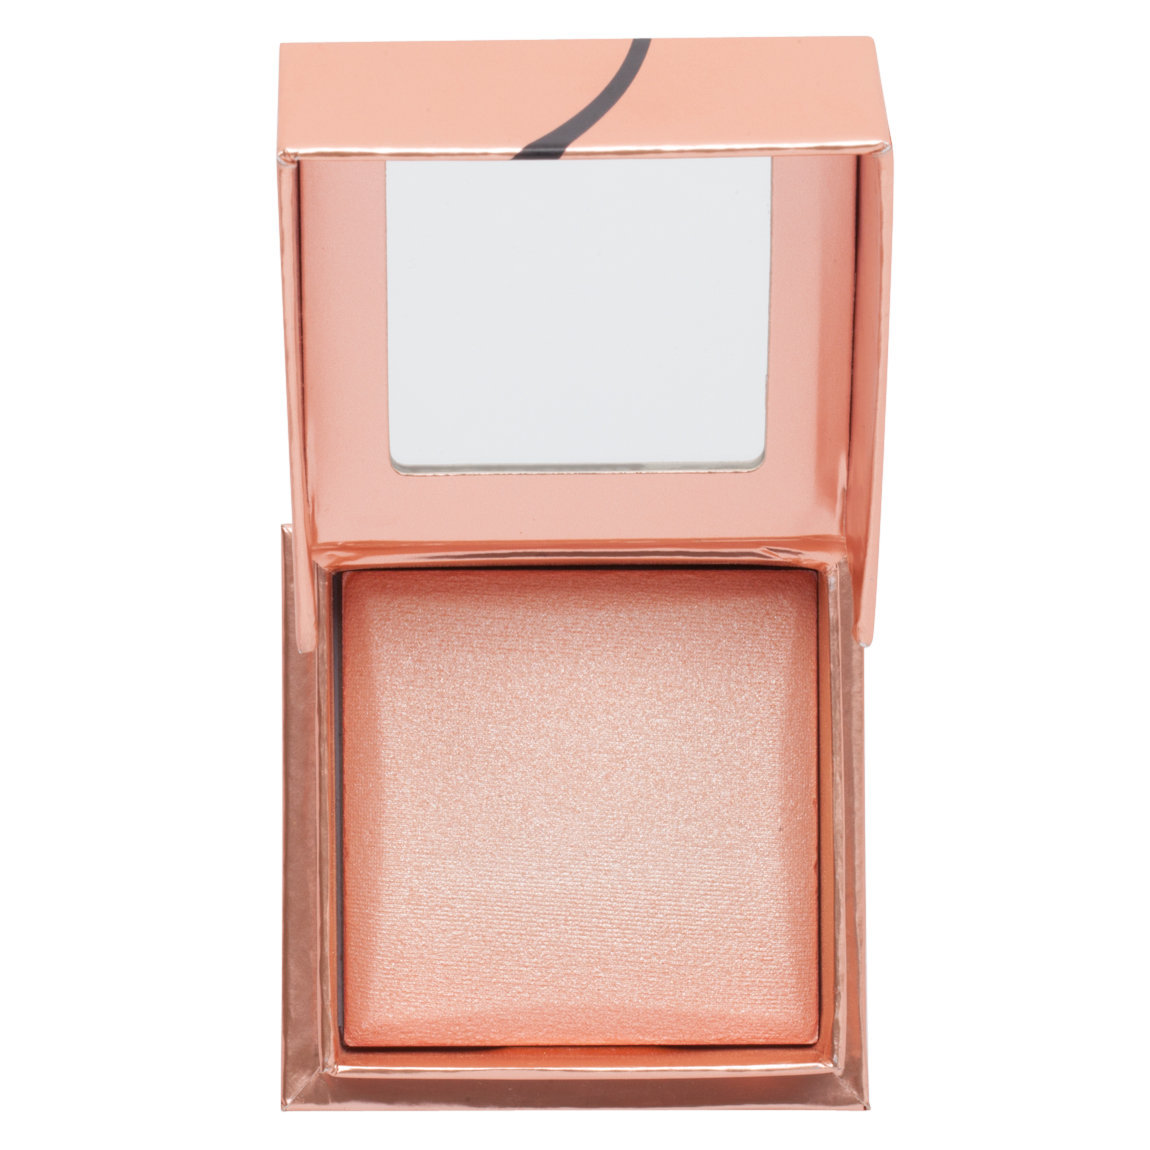 Benefit Cosmetics Dandelion twinkle Powder Highlighter product smear.